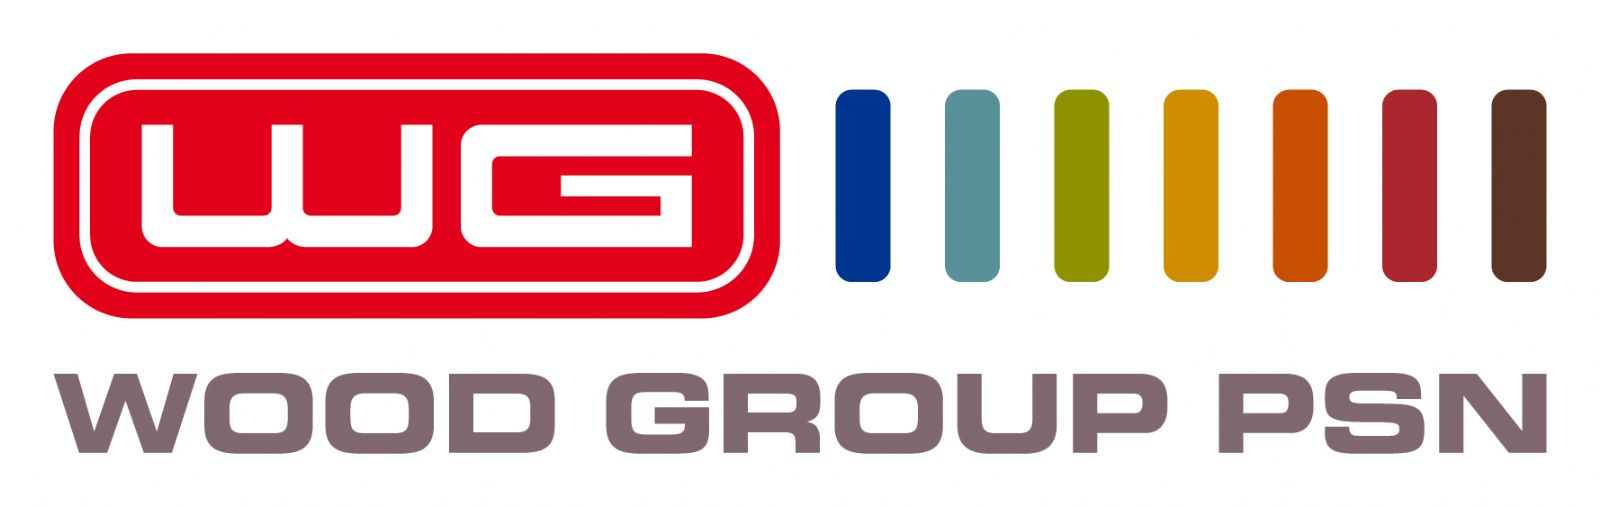 Wood Group PSN logo